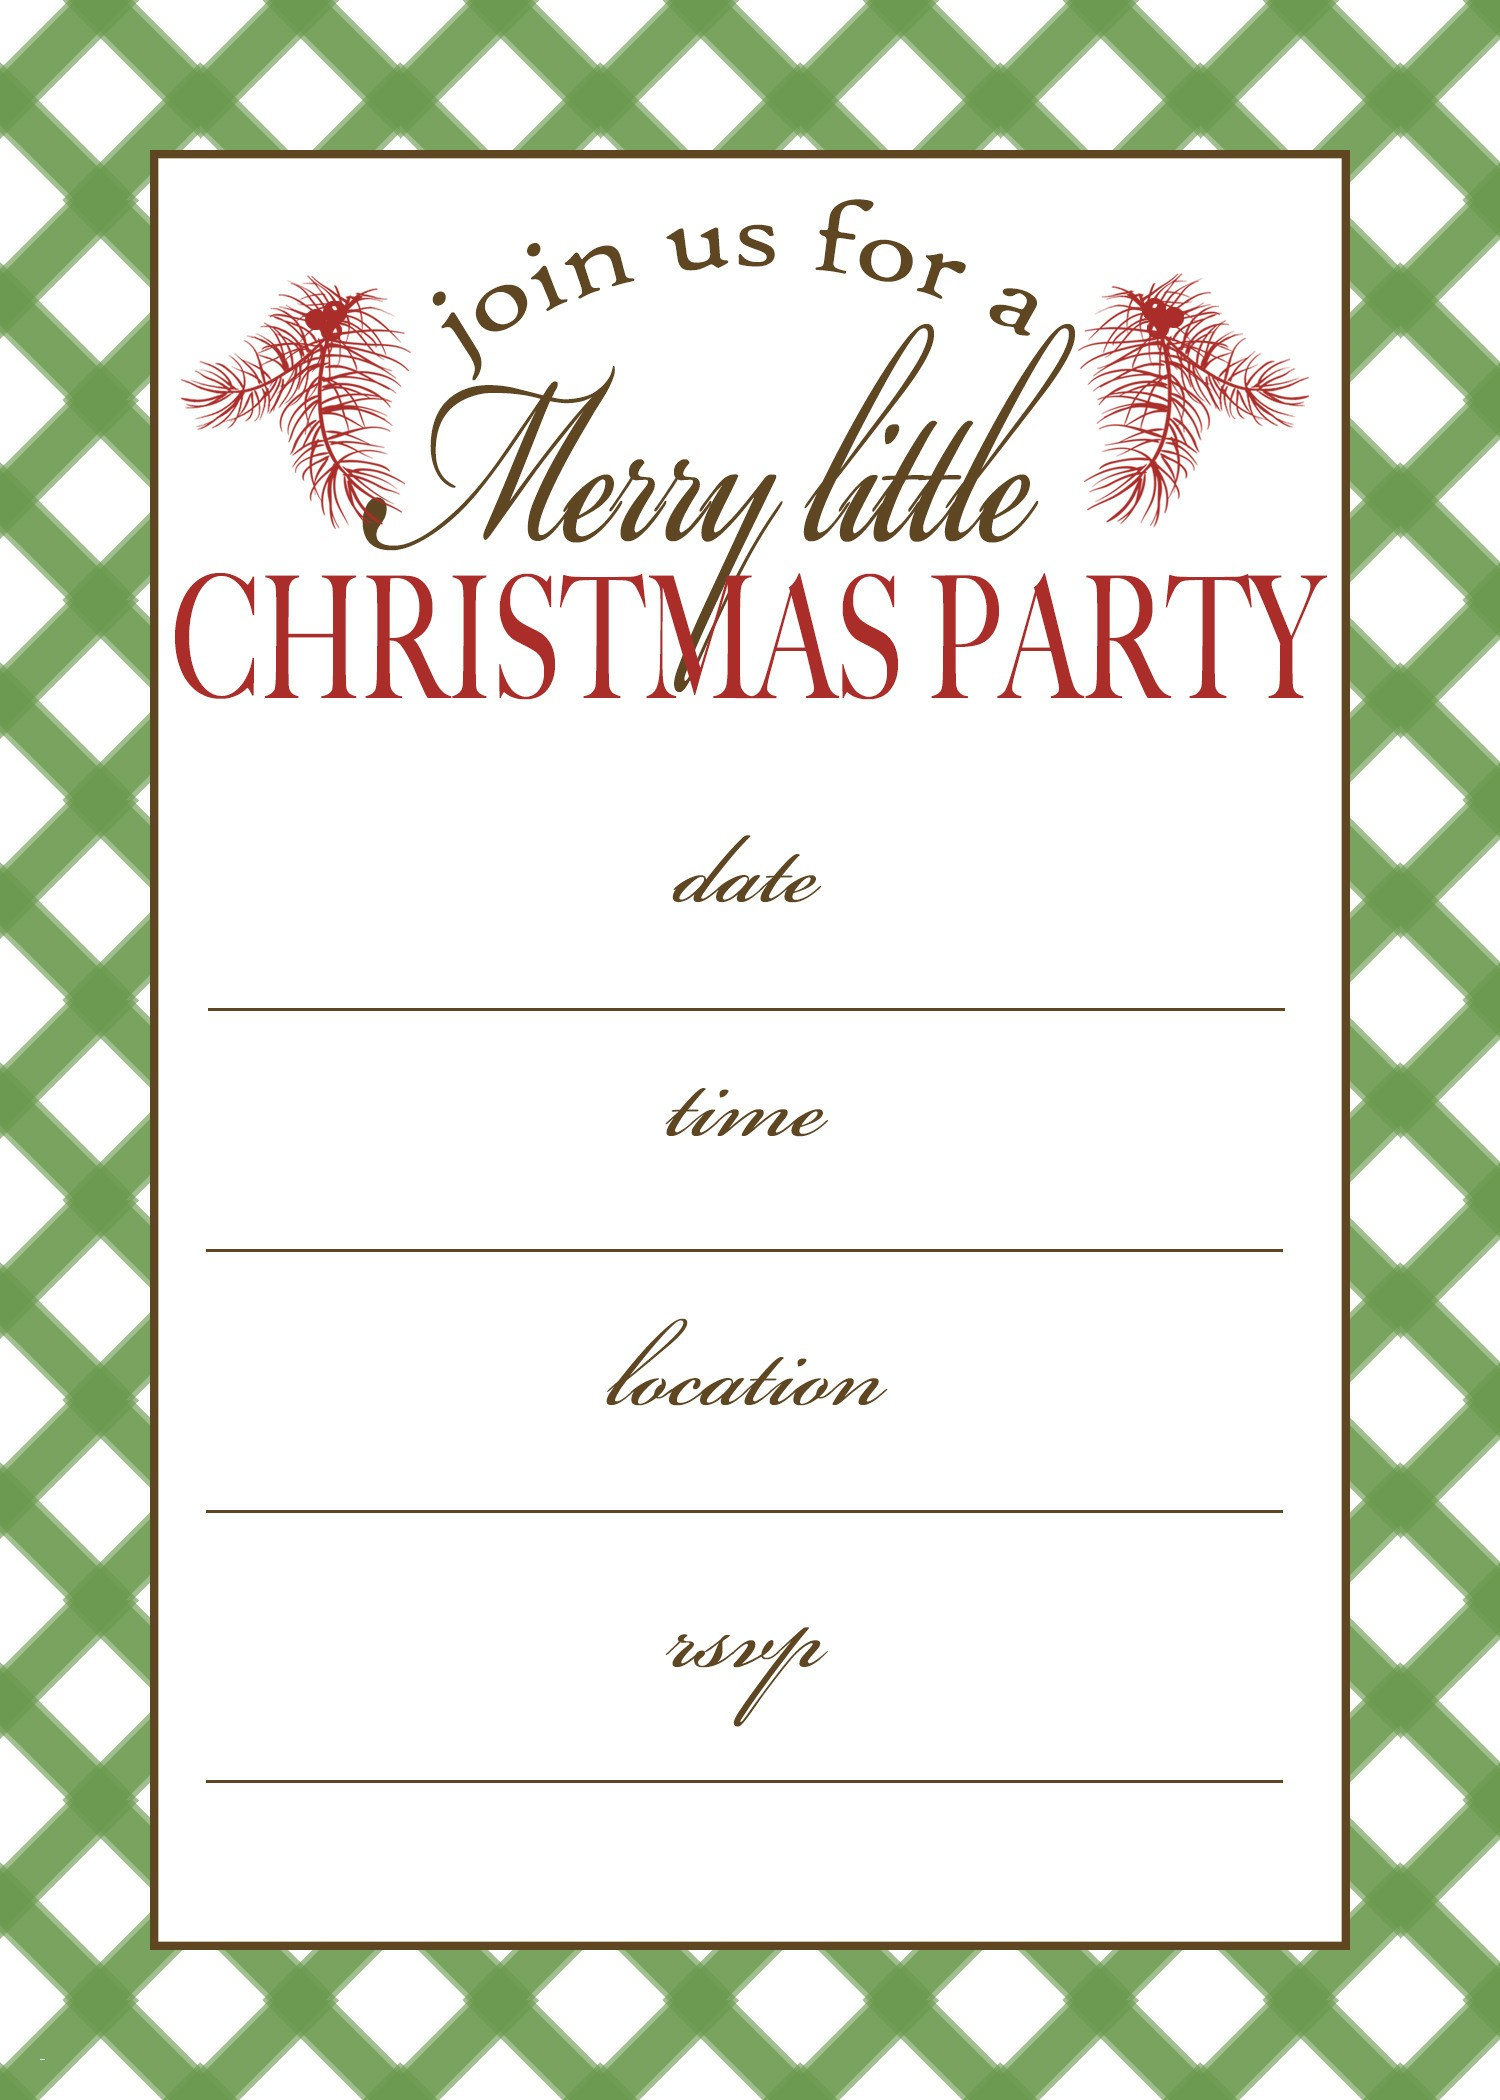 Free Printable Christmas Party Flyer Templates Invitation Valid - Free Printable Christmas Party Flyer Templates